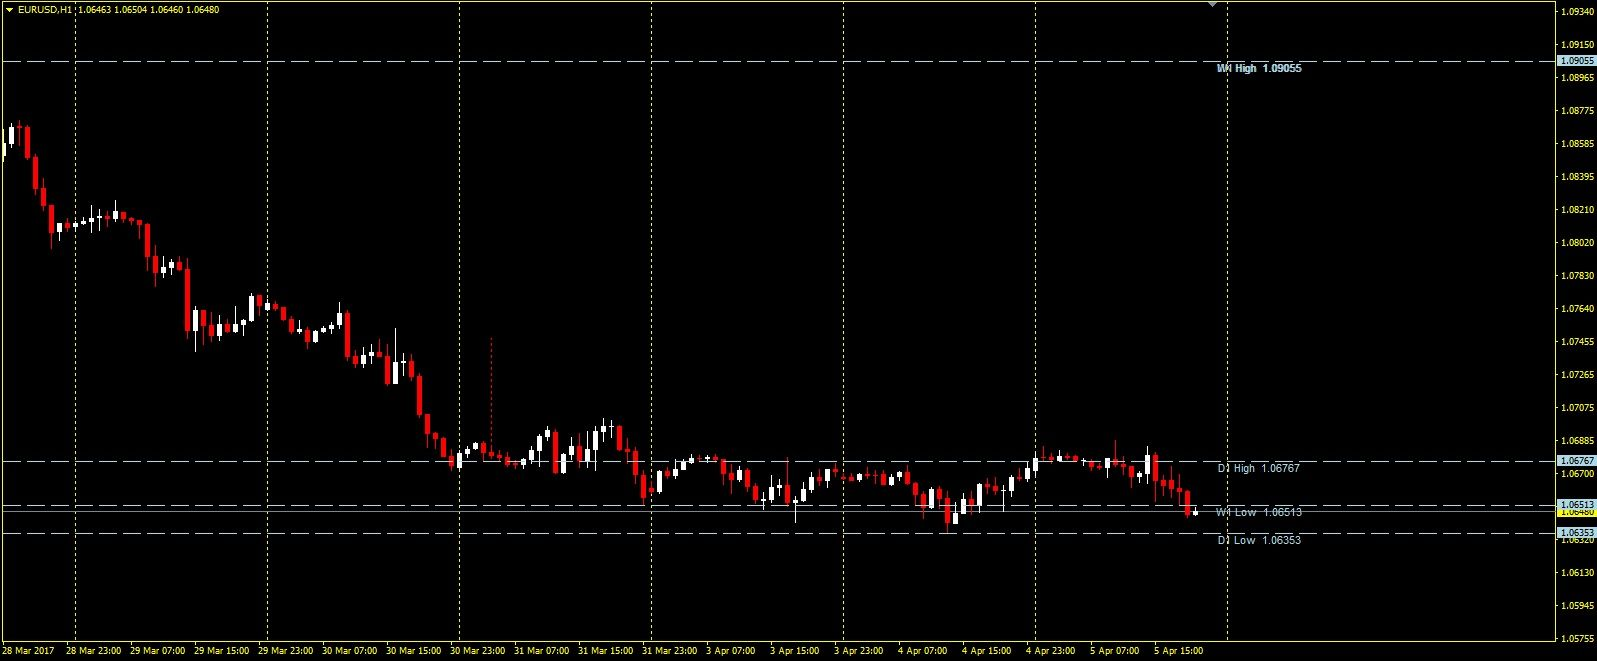 Forex Bank Levels Alert Indicator